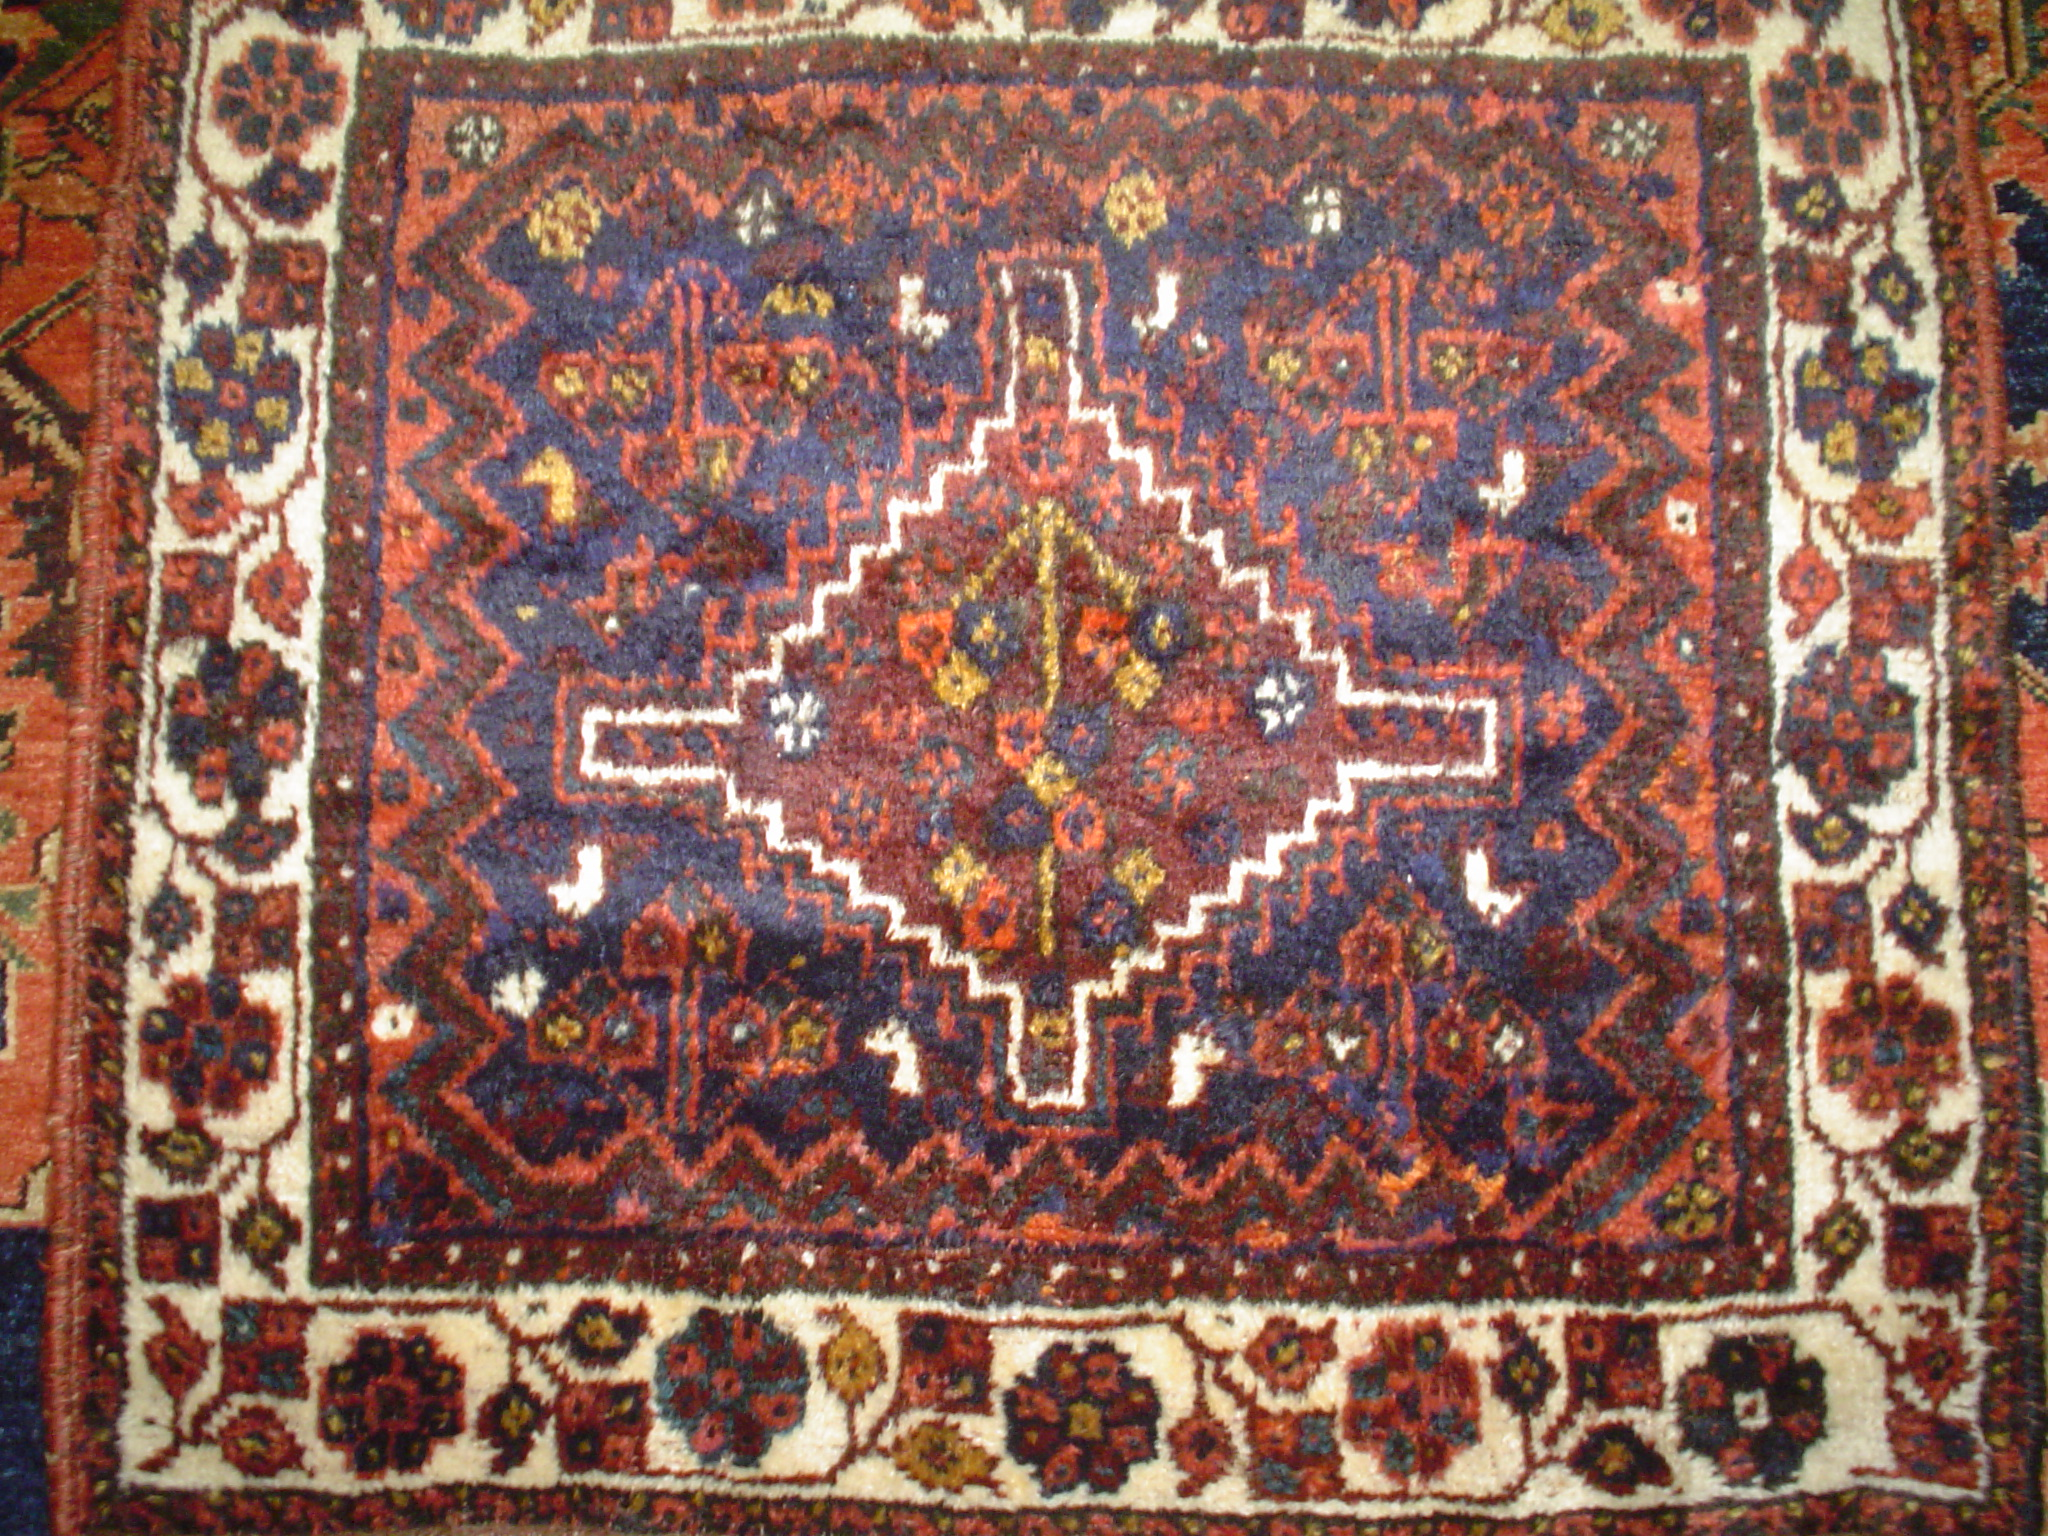 "#8) 2'7"" x 2'10 semi-antique Persian bagface. (front of an old saddle bag) Shiraz, Iran. Silky wool, warm earth tones."